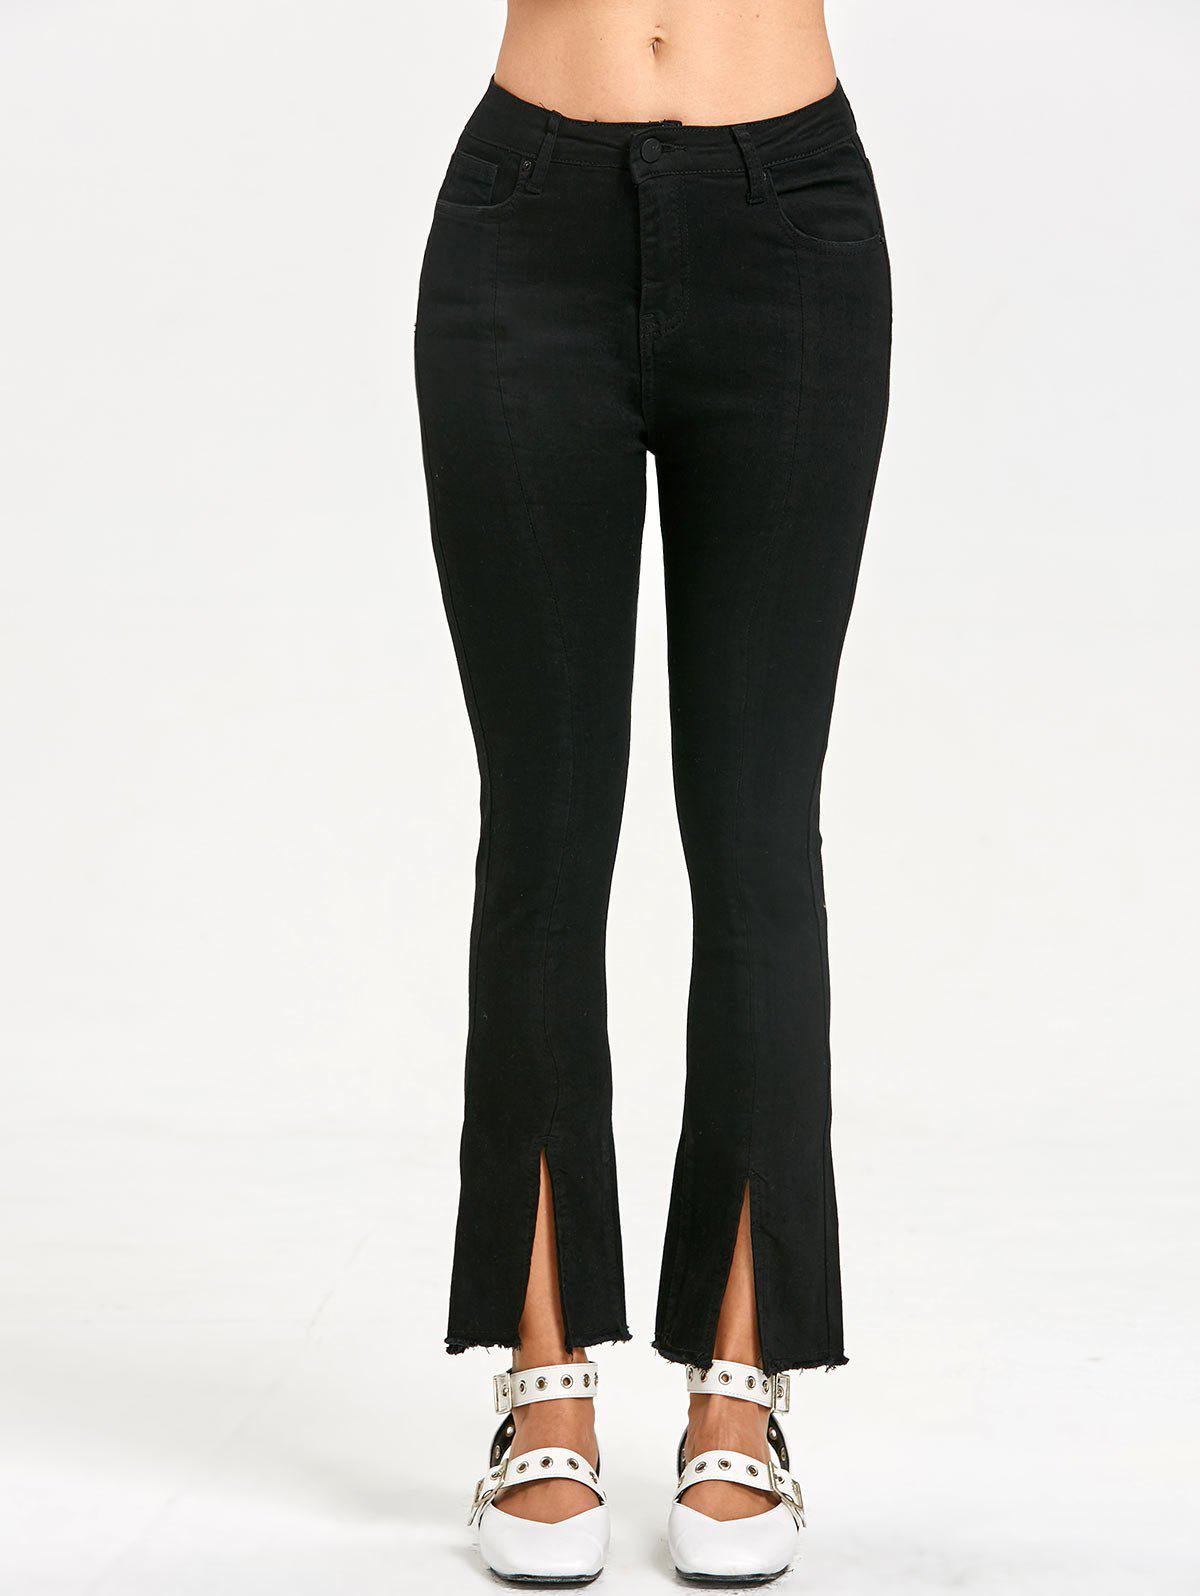 Slit Frayed Zipper Fly Jeans - BLACK L